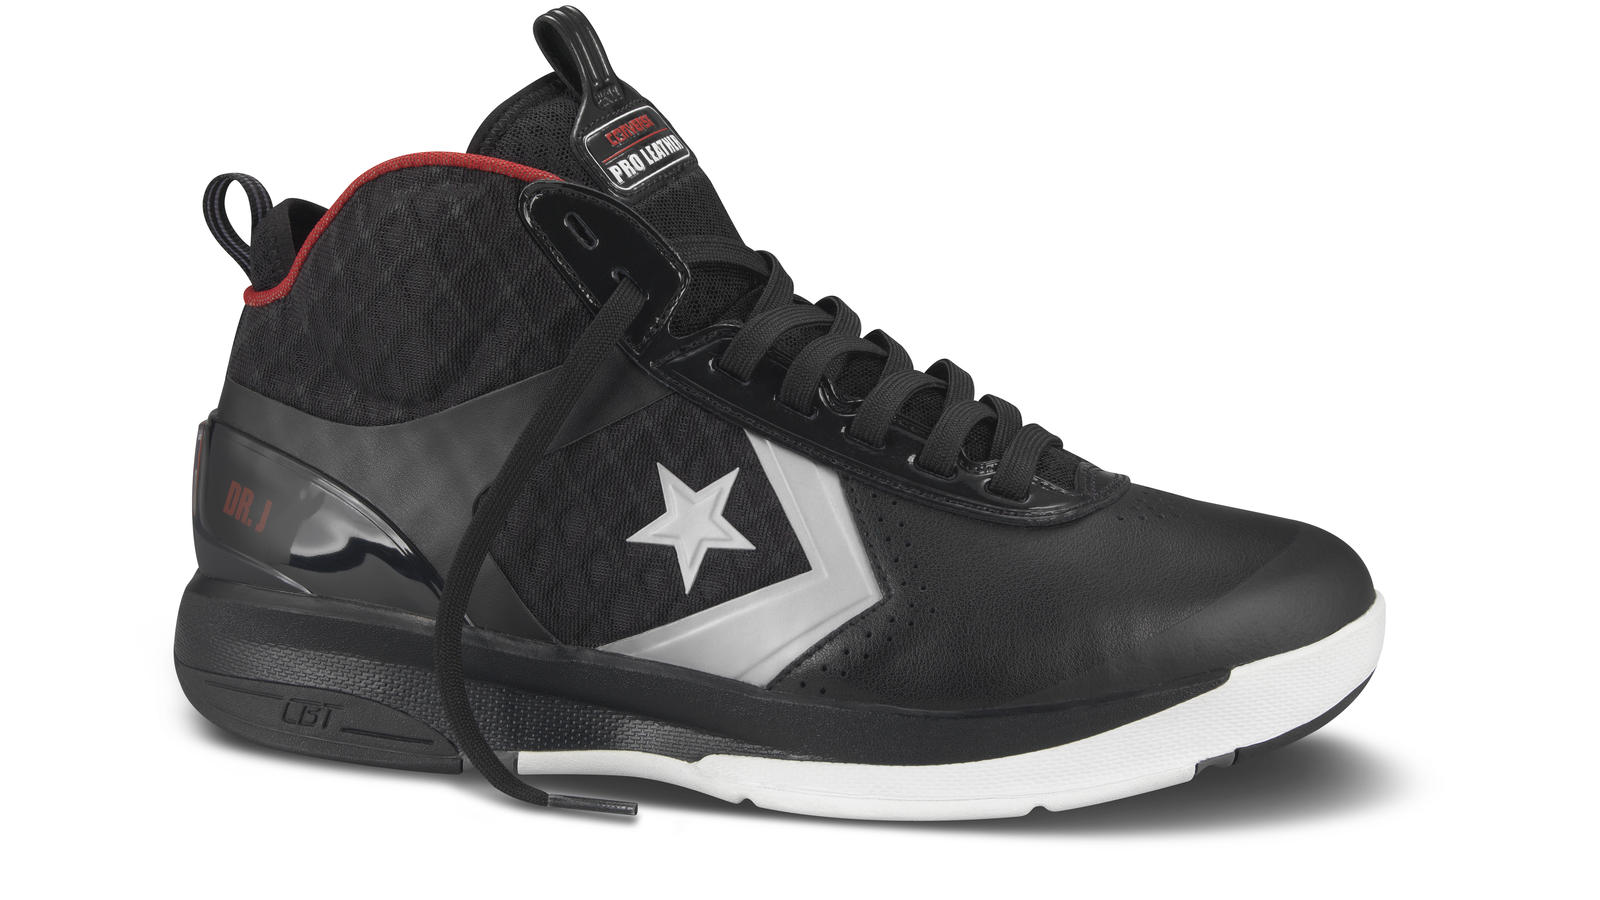 35a1186043ed Converse Holiday 2011 basketball collection showcases advanced ...